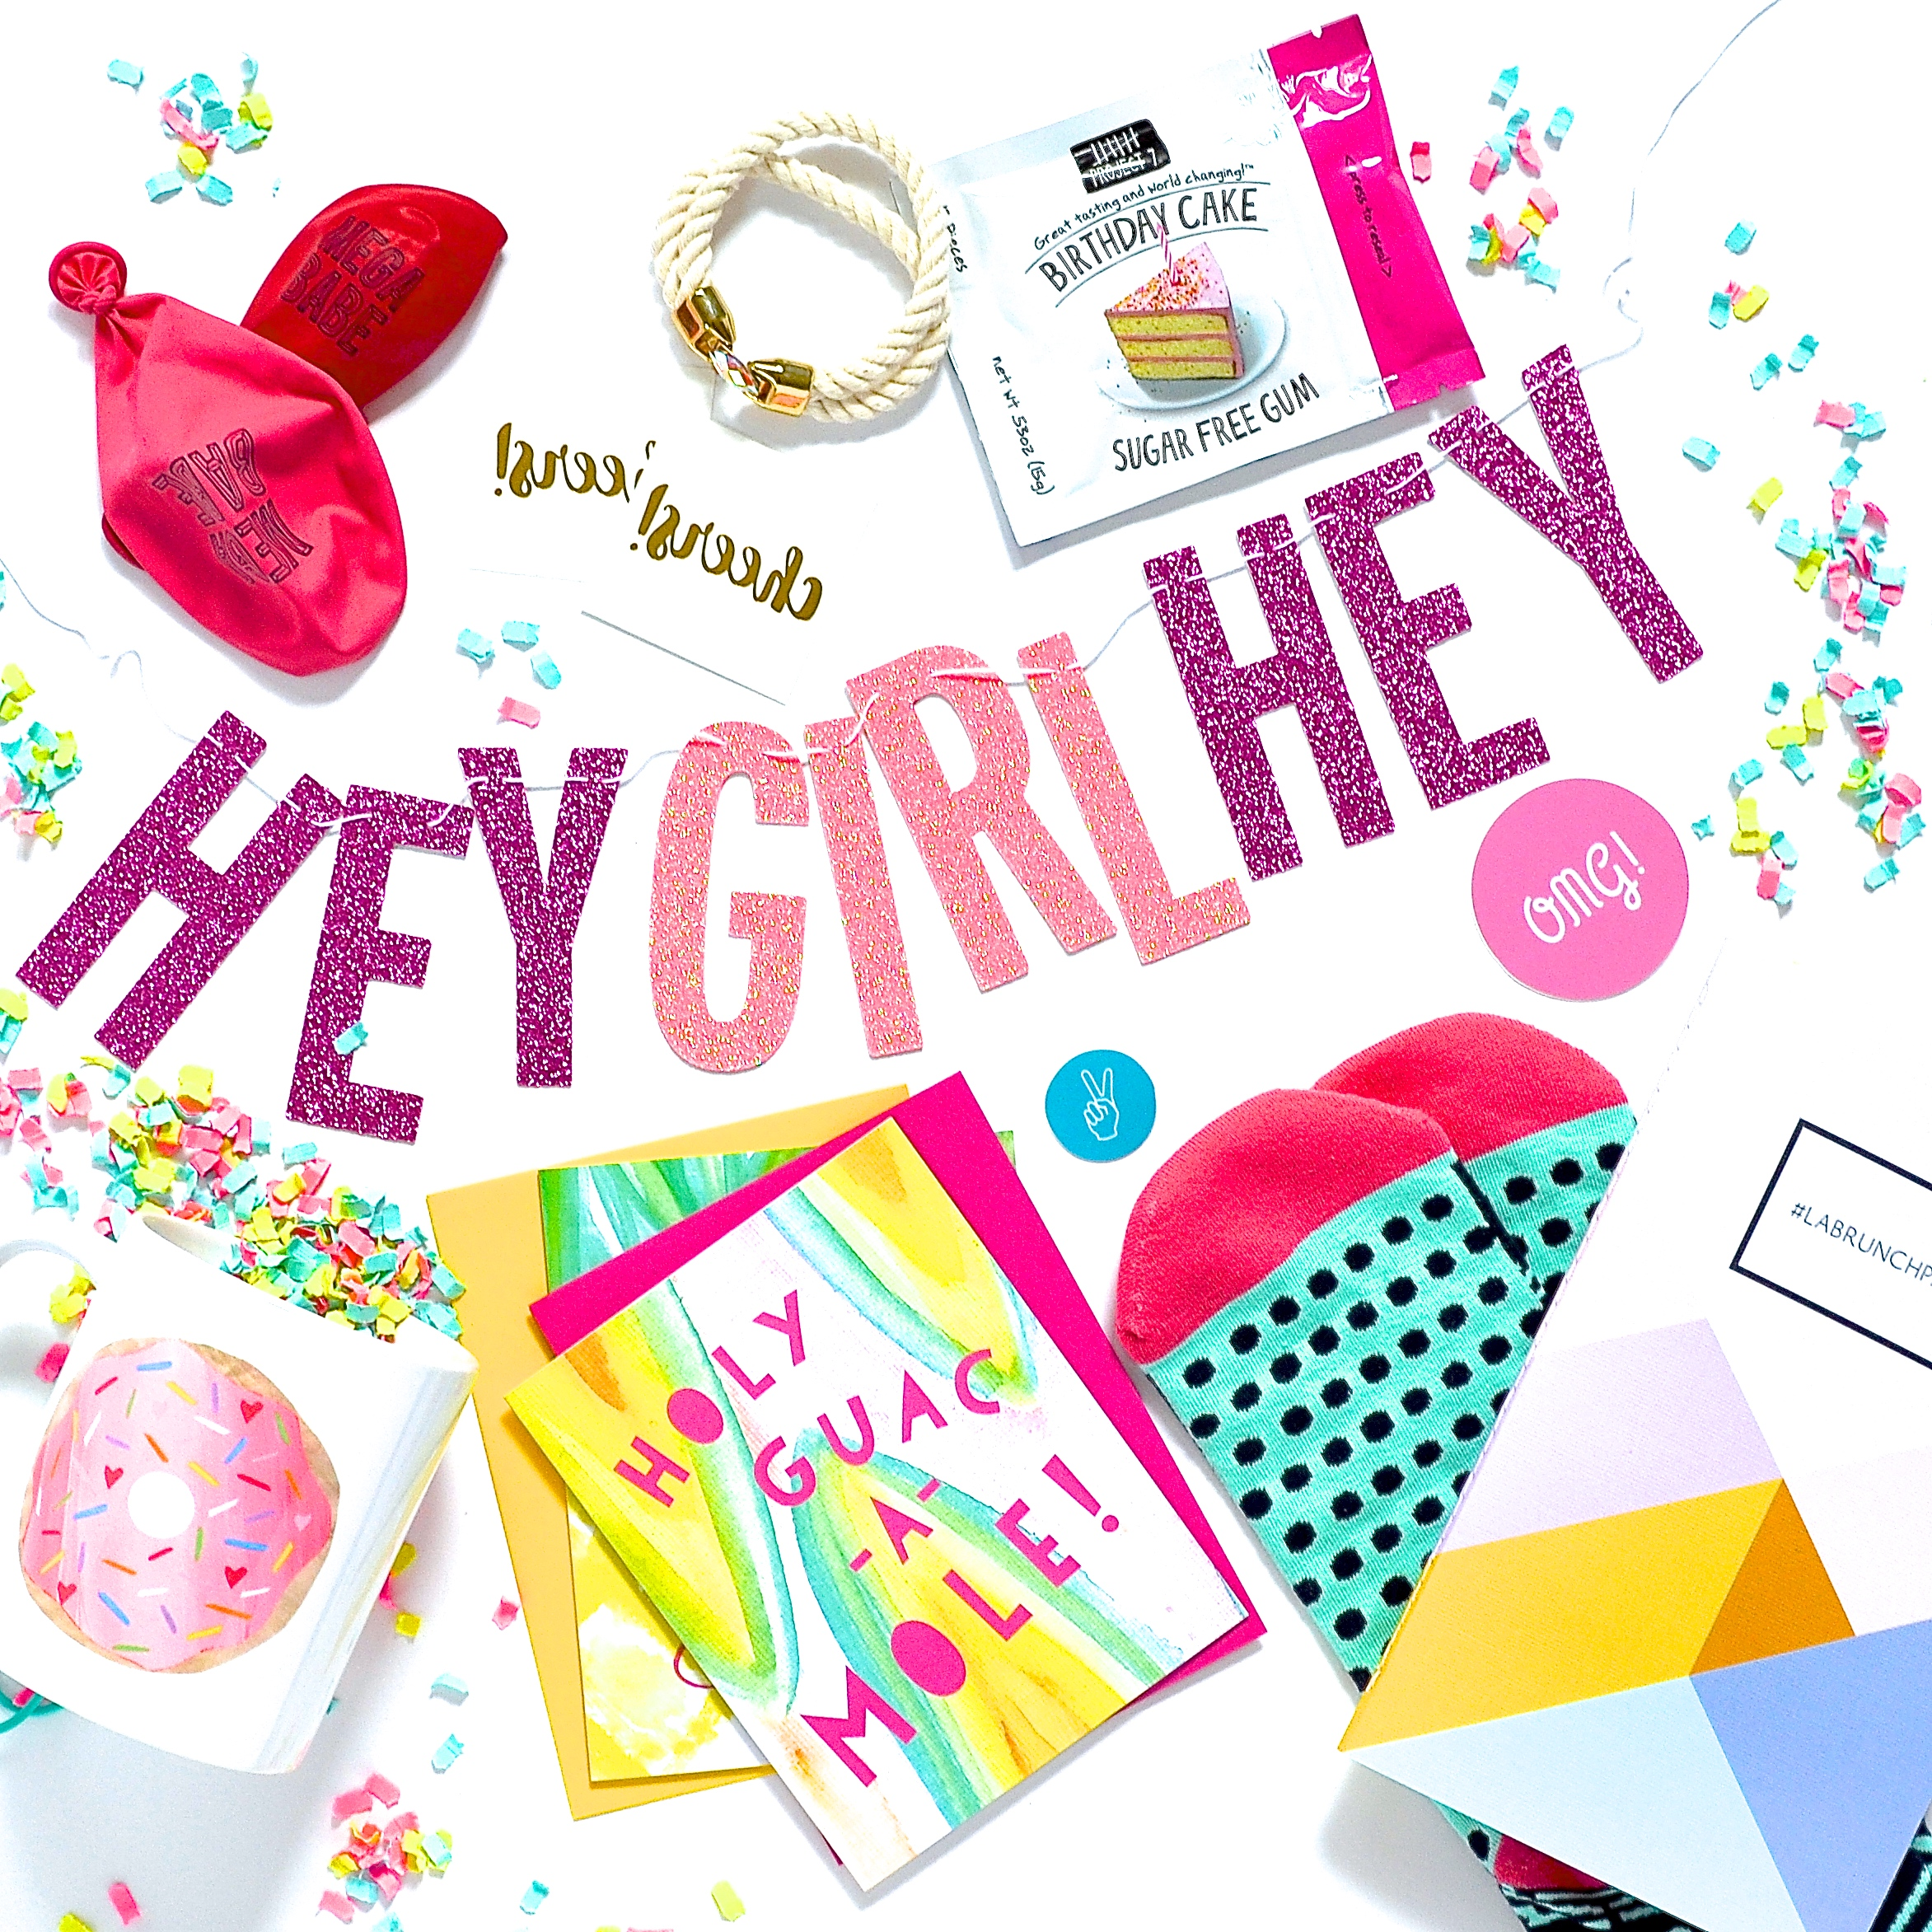 'Hey Girl Hey' Banner-   Dixie&Twine   // Custom Notebook-   May Designs   // 'Mega Babe' Balloons-   Little Arrow   // Rope Bracelet-   Allison Cole Jewelry   // Patterned Socks-   Woven Pear   // Gold 'Cheers' Tattoos-   Love & Lion   // Flavored Gum-   Project 7   // Donut Mug-   Lishy Lishy Home   // Stationery + Stickers-   Violet Tinder